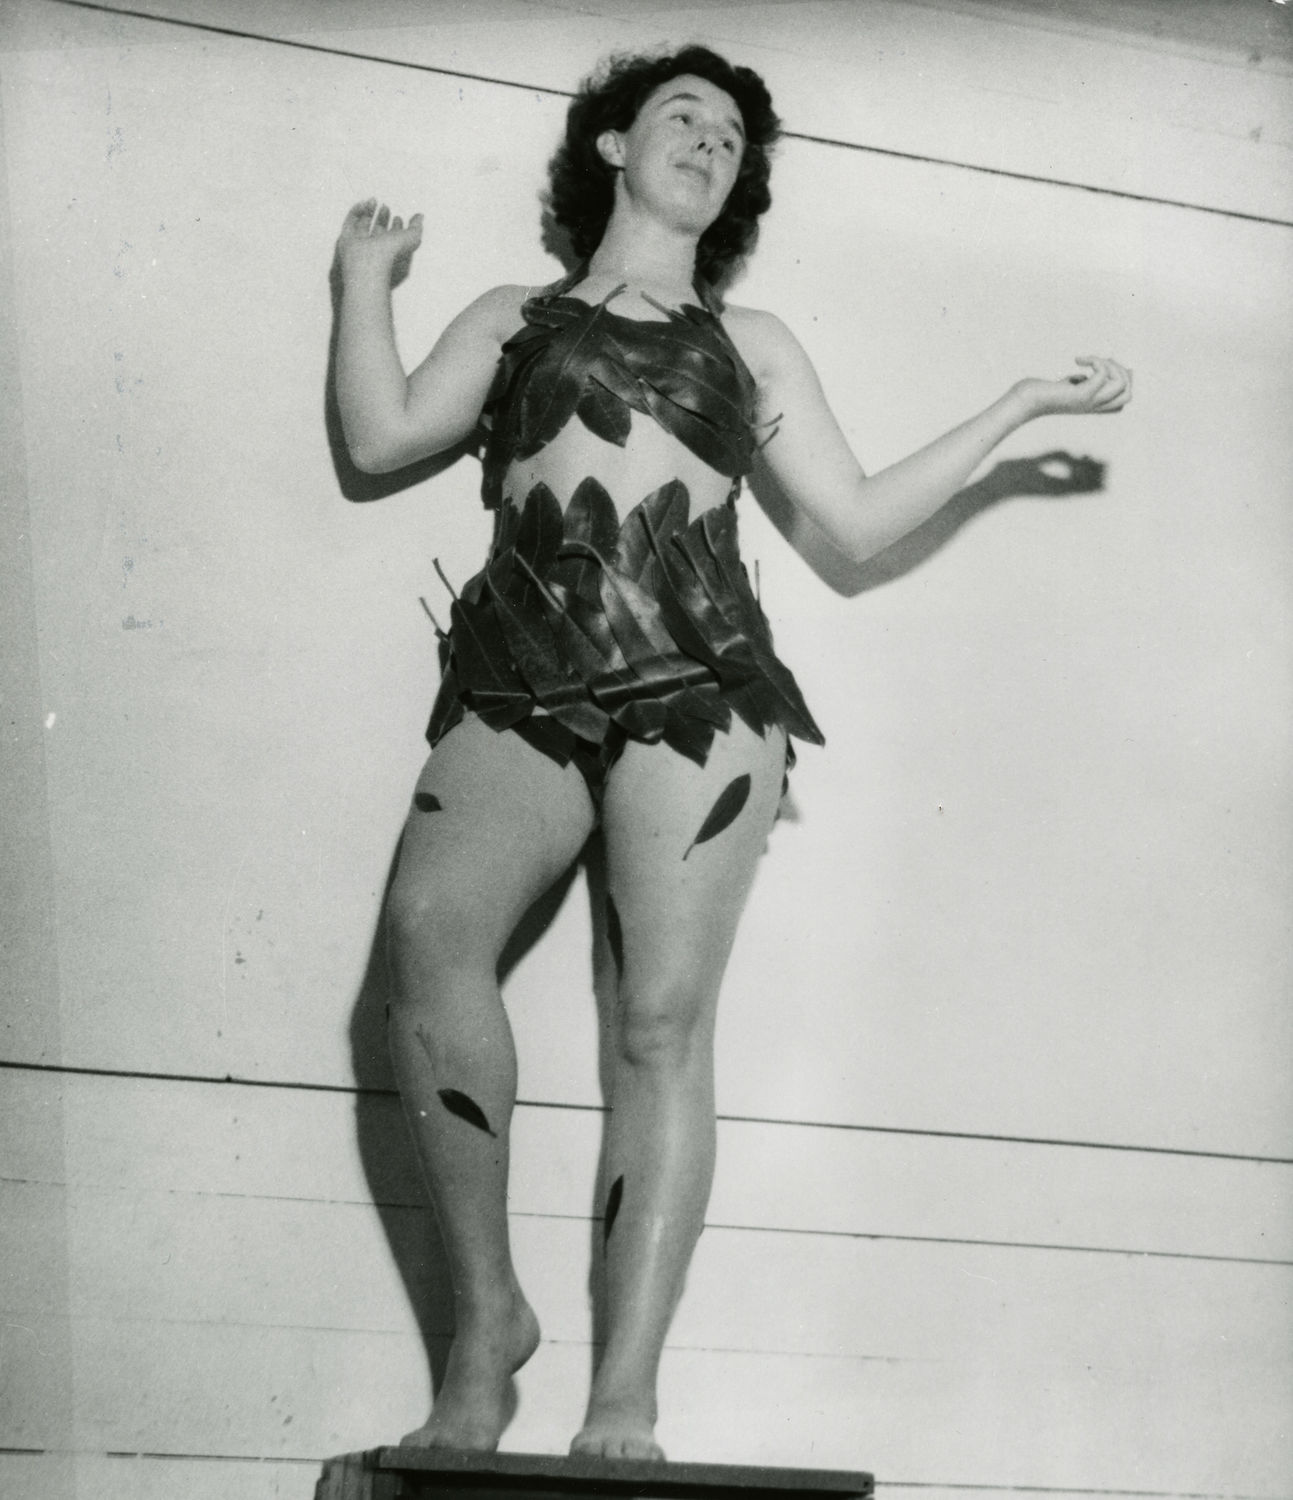 Evelyn Bullock dressed for costume party at the 1949 Summer Art Institute. Photo by Dina Woelffer.